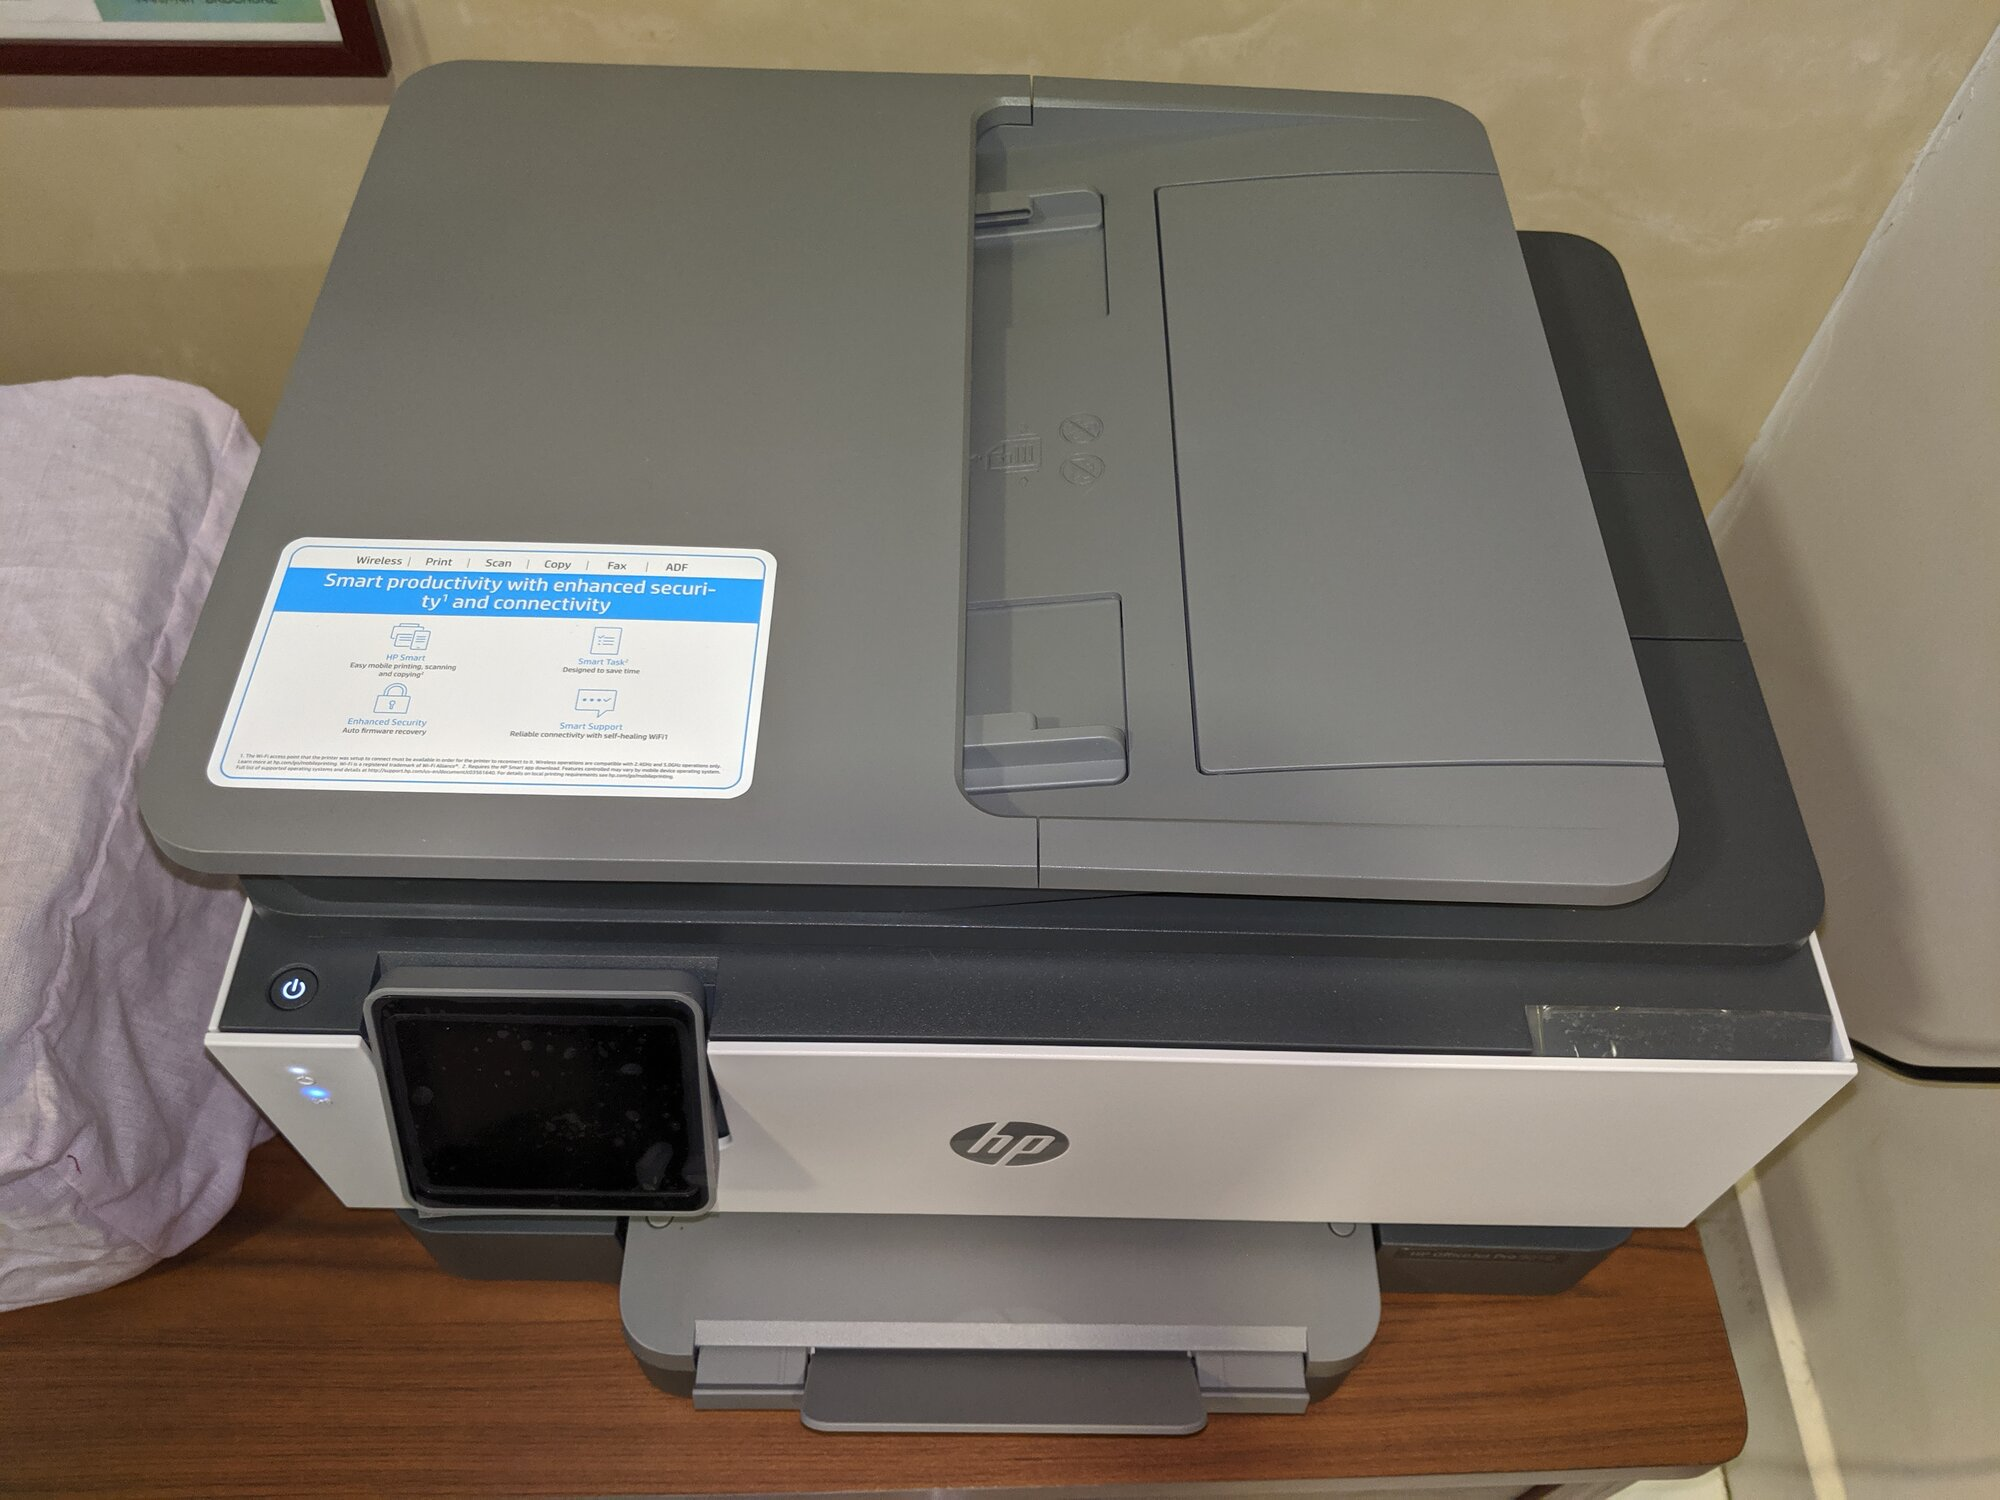 The 'naked' HP OfficeJet Pro 9010